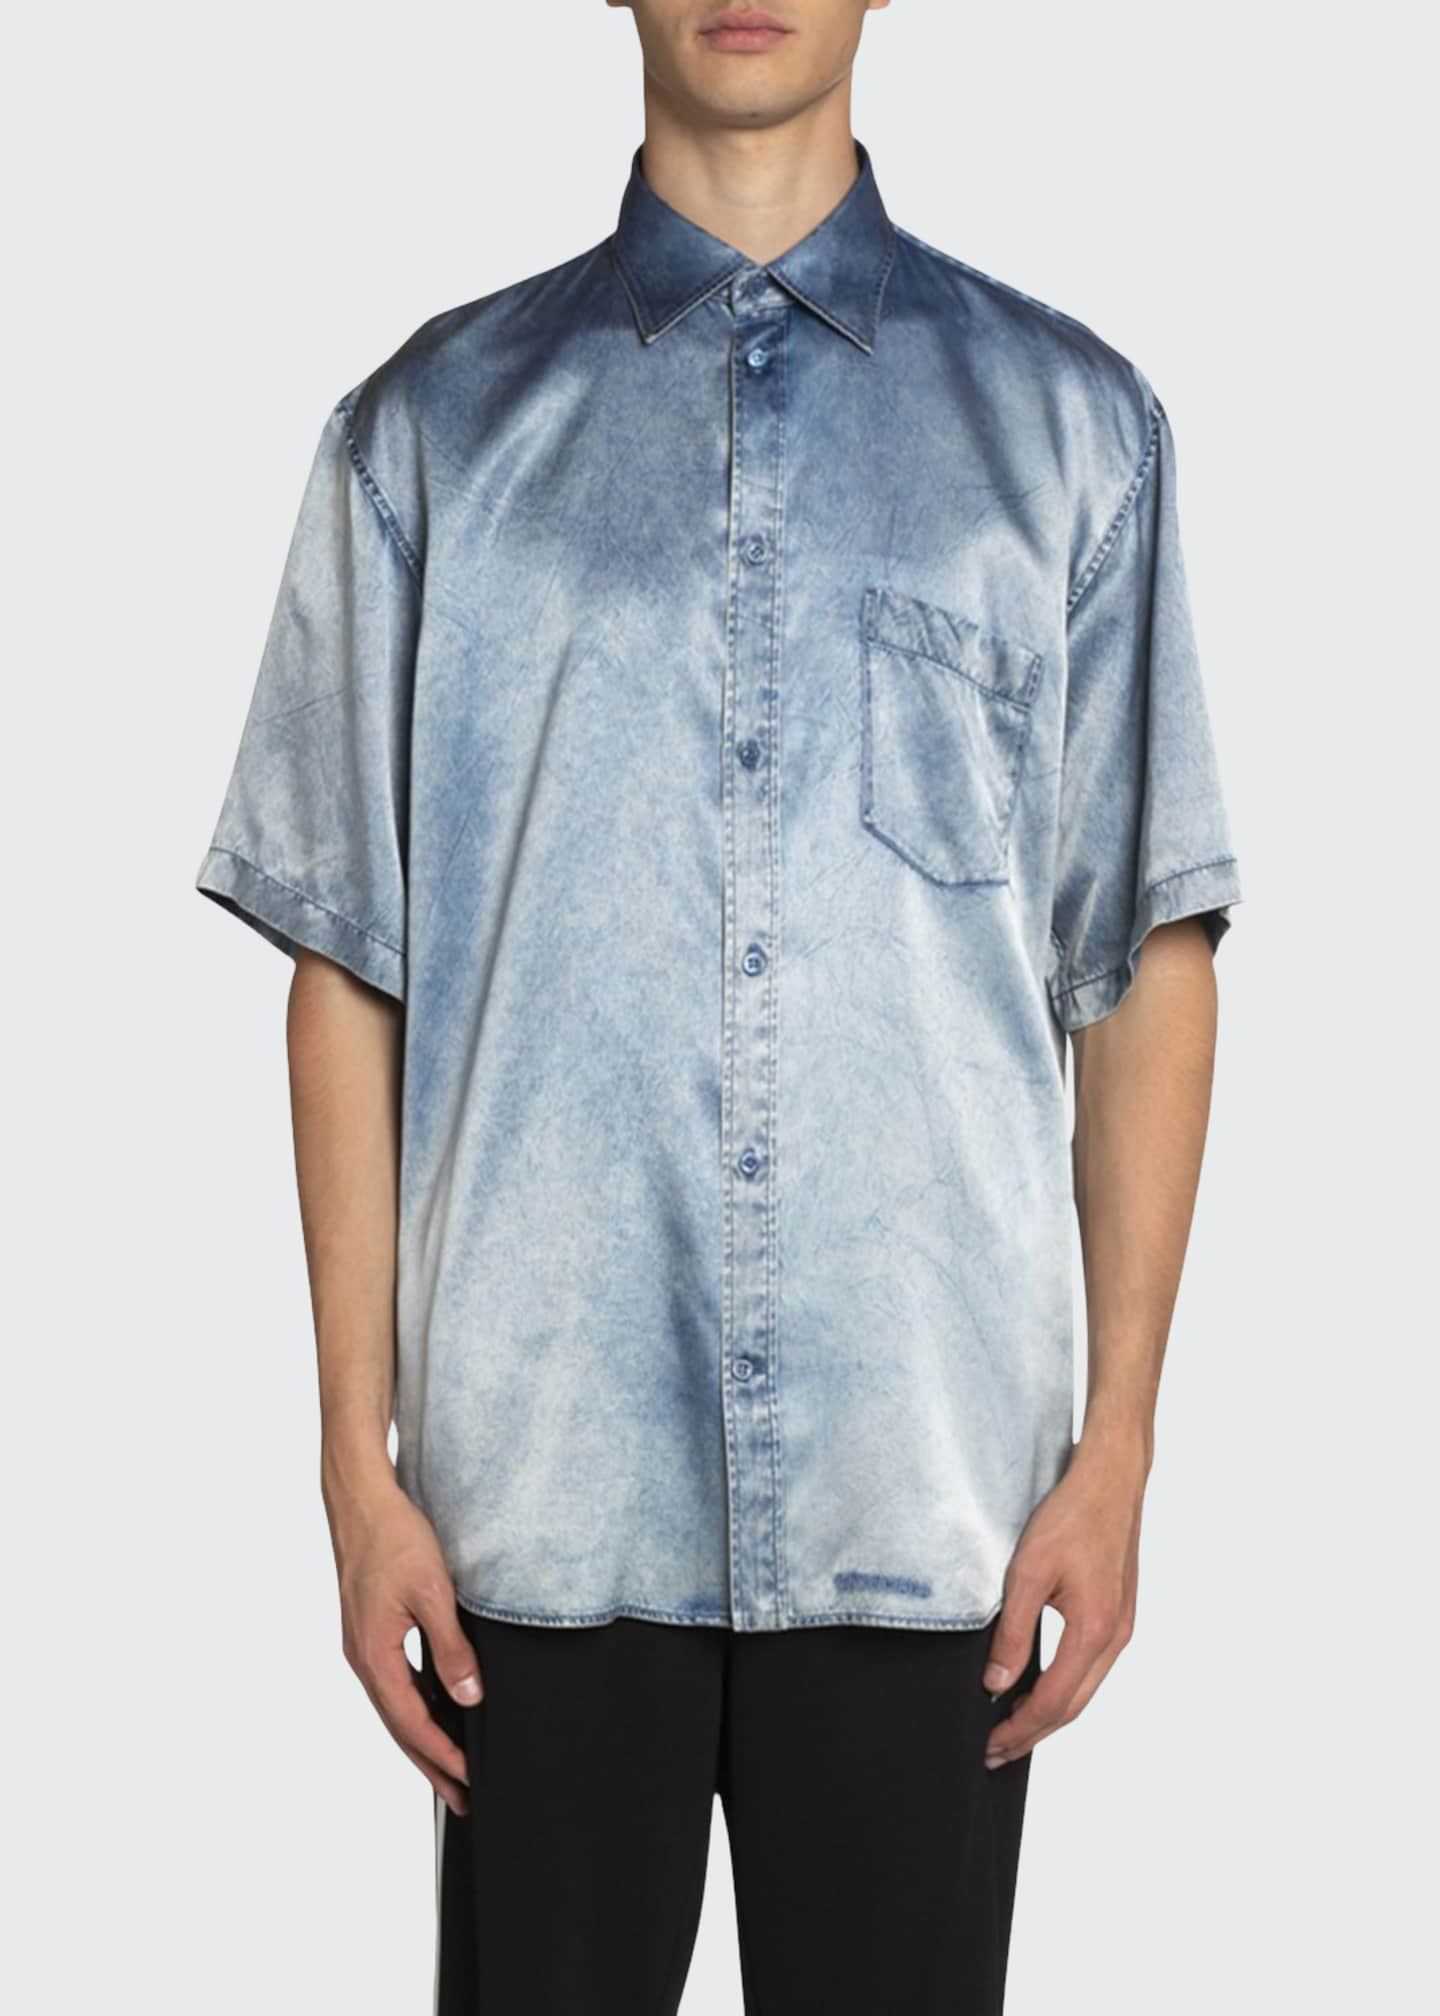 Balenciaga Men's Oversized Denim-Print Satin Sport Shirt